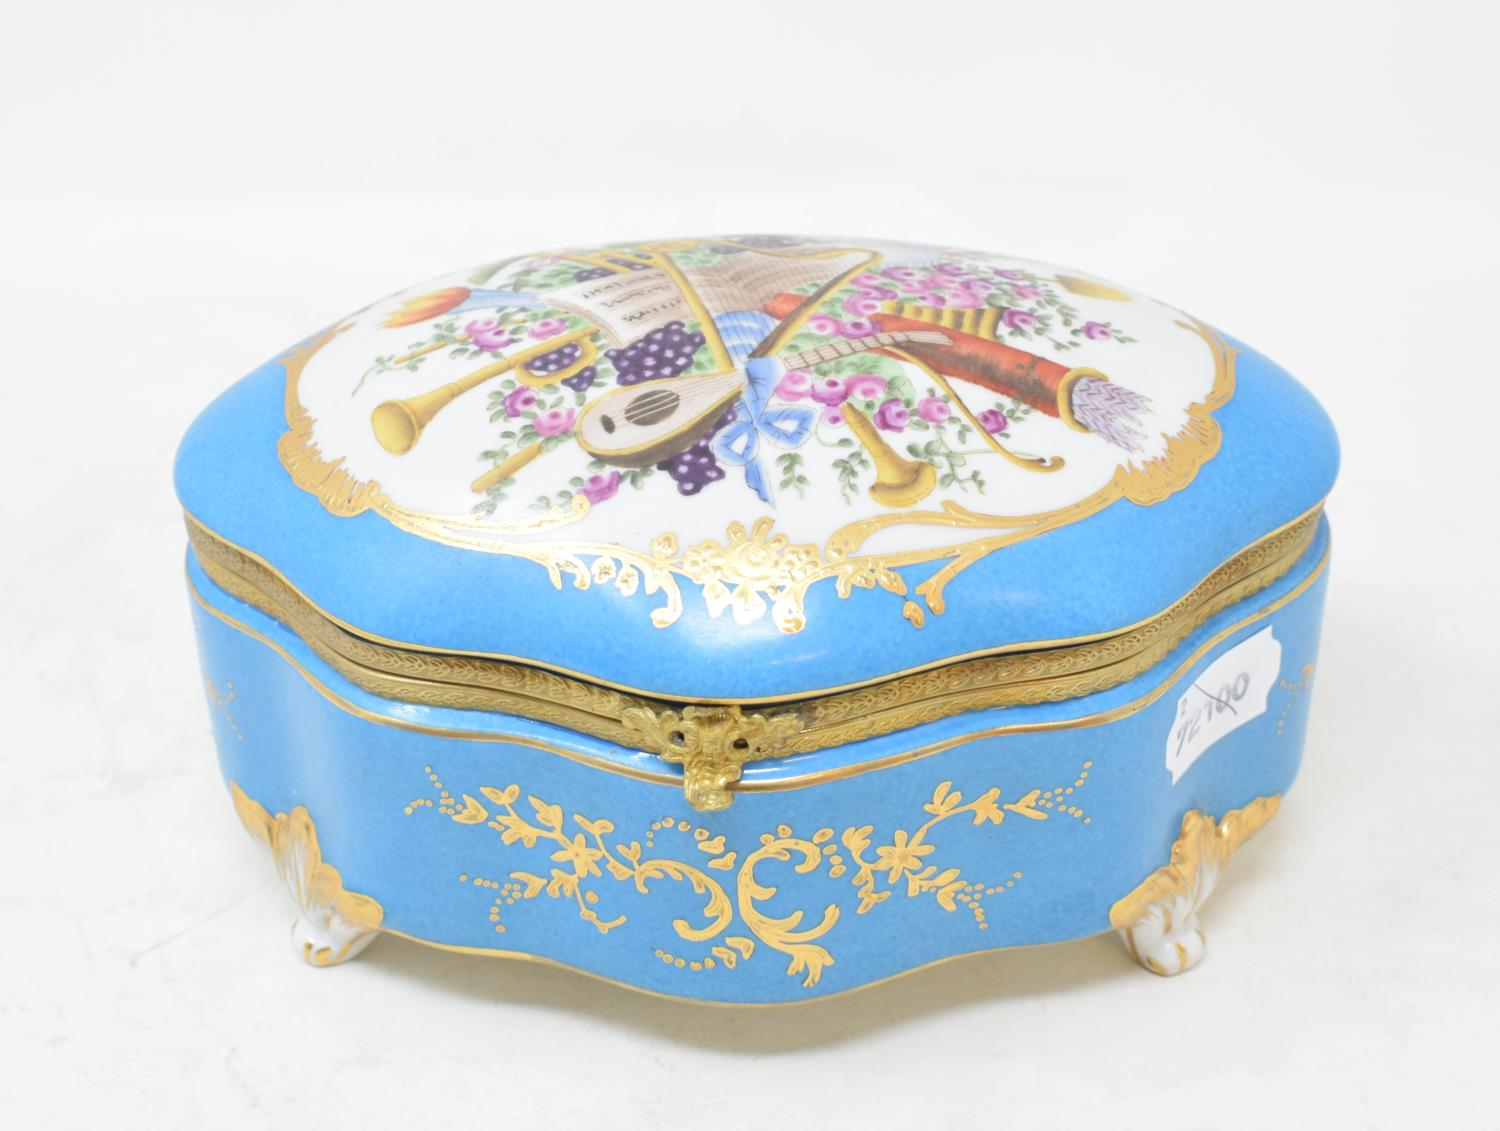 Lot 15 - A Sevres style porcelain box, decorated musical instruments, 20 cm wide Modern